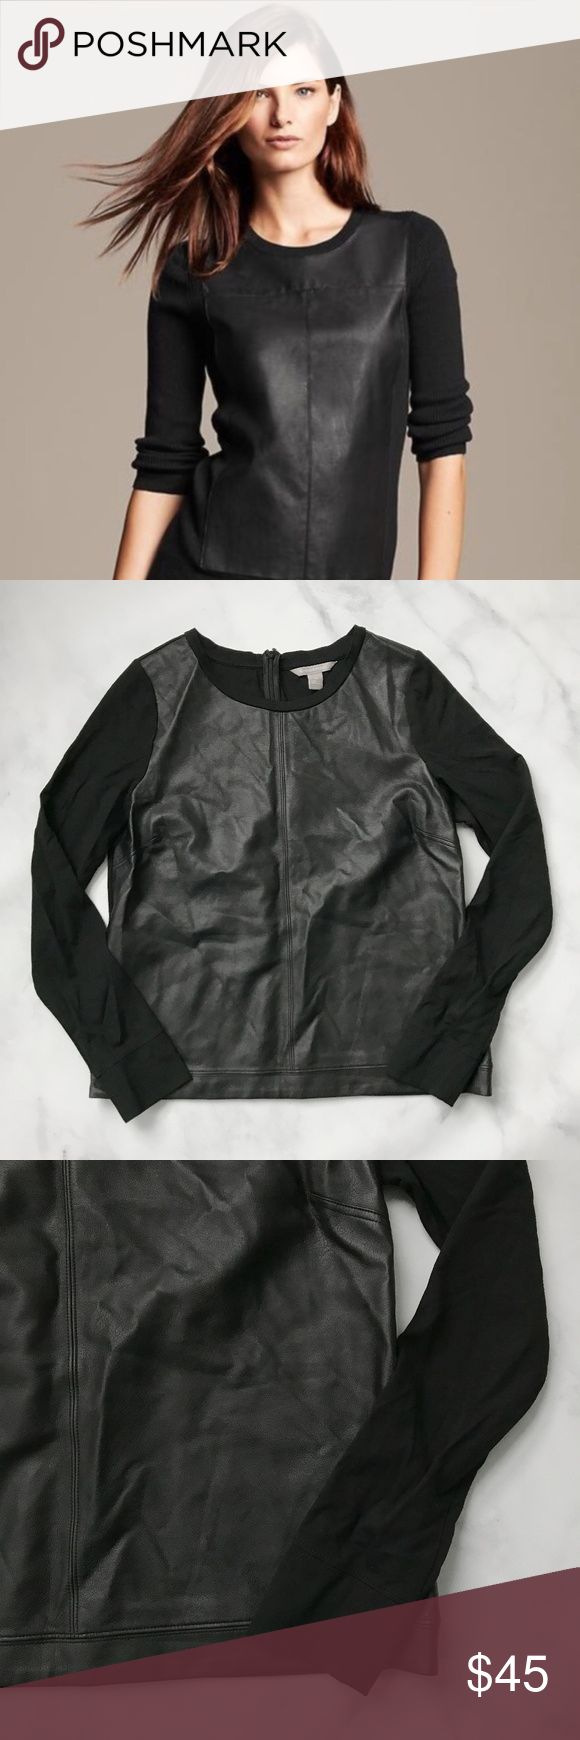 Banana Republic Faux Leather Long Sleeve Top Comfy yet chic faux-leather top from Banana Republic. Leather panel is on the front. Sleeves and back are black sweatshirt material. Size M. Excellent condition. No damage. Banana Republic Tops Tees - Long Sleeve